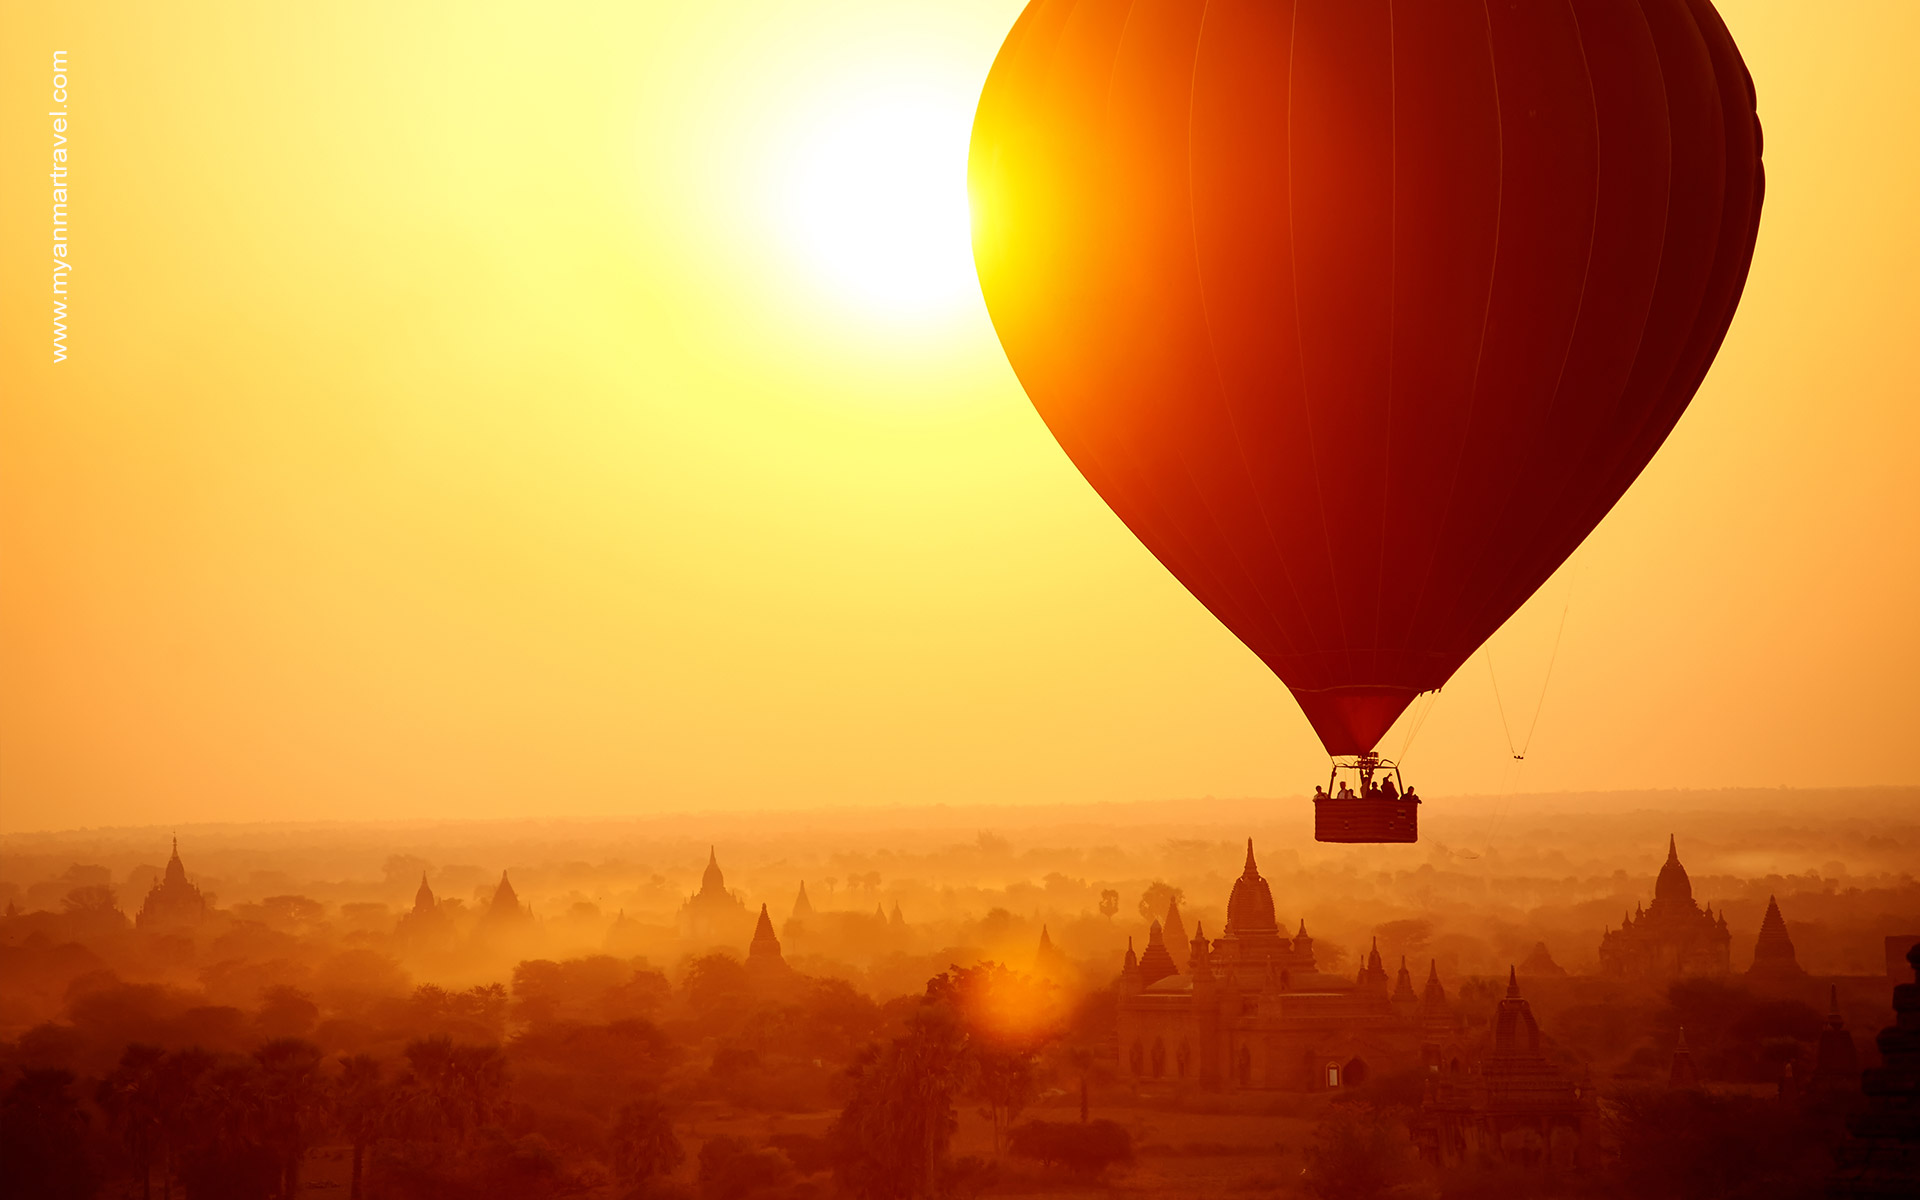 Hot air balloon in bagan